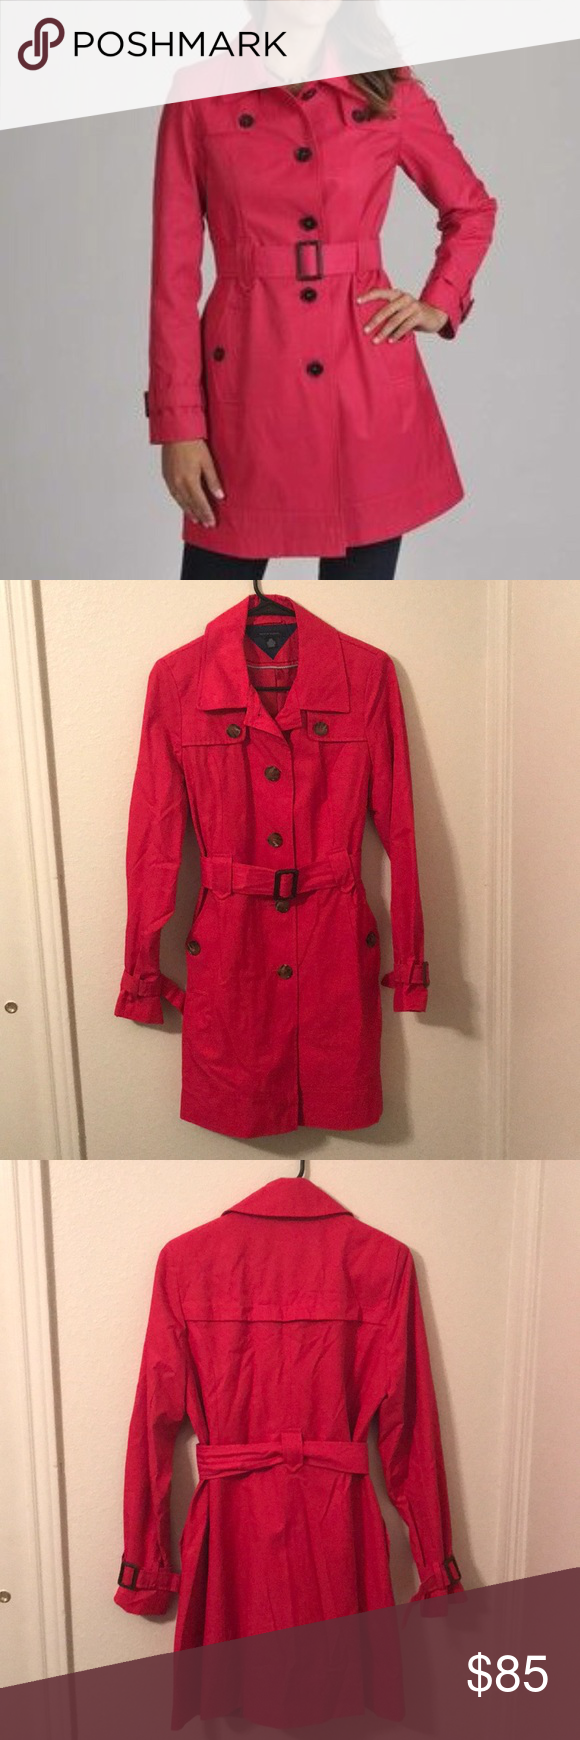 Hot Pink Tommy Hilfiger Trench Coat